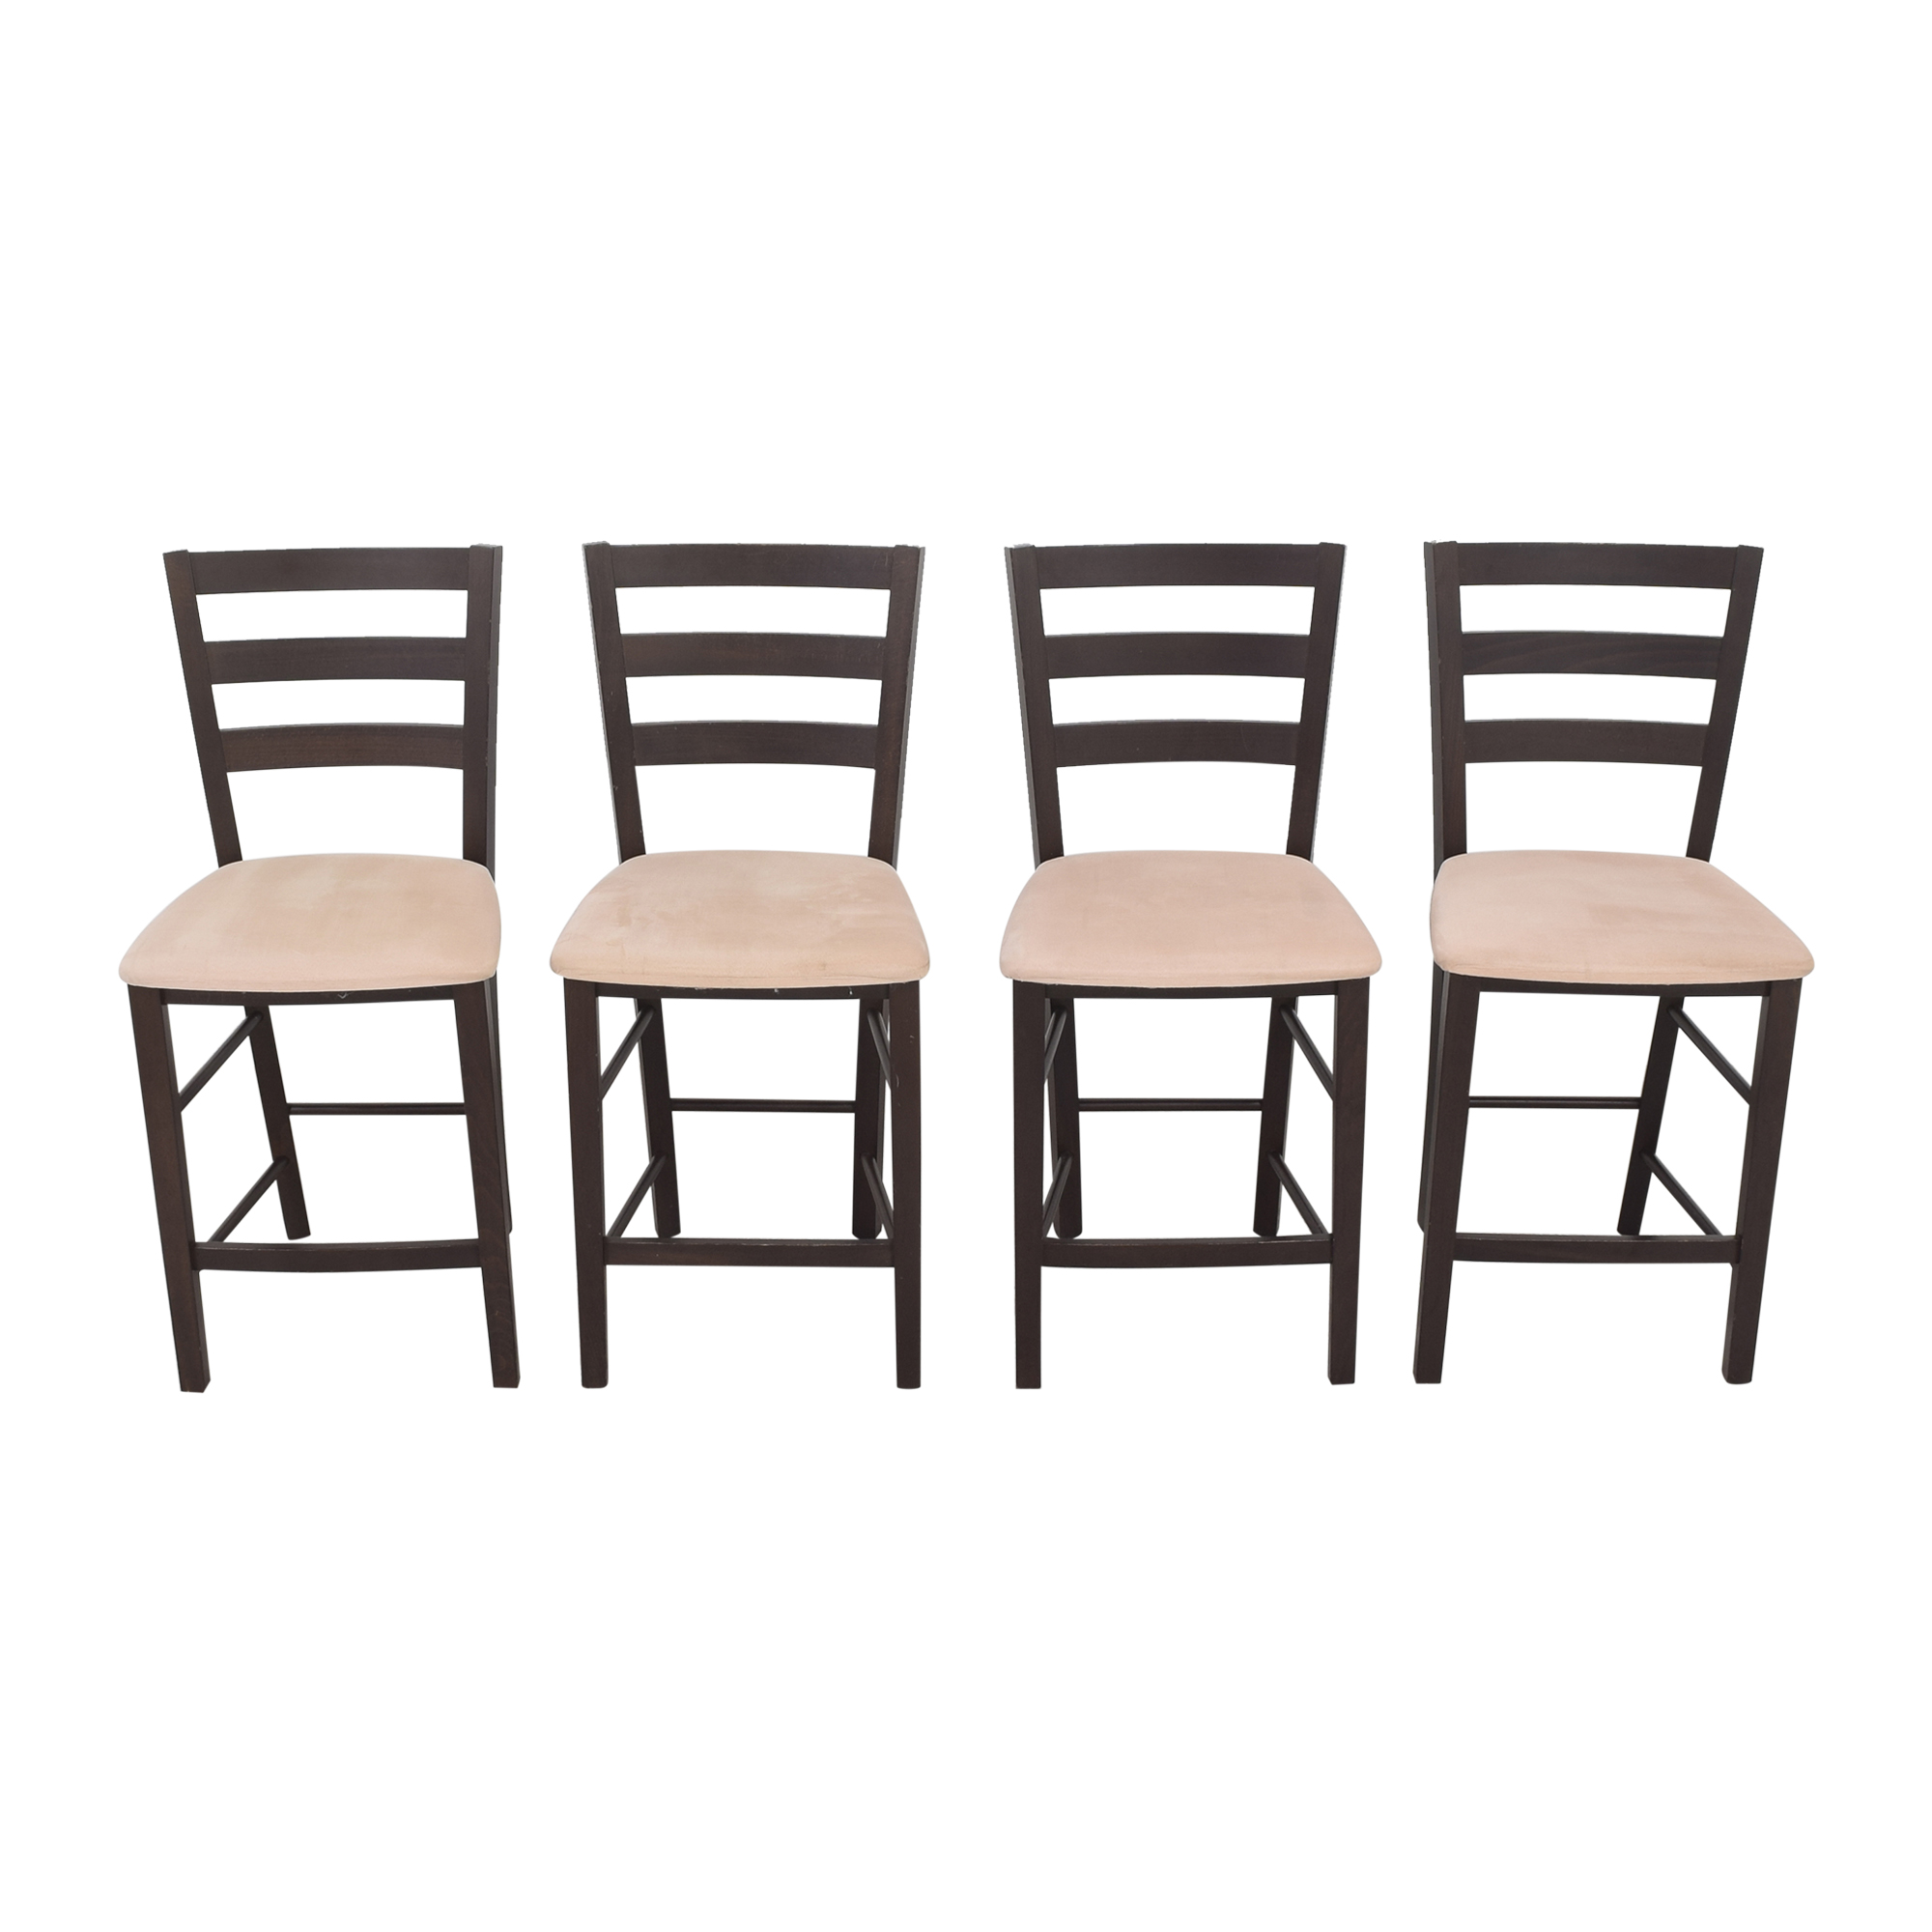 Macy's Macy's Cafe Latte Counter Stools for sale